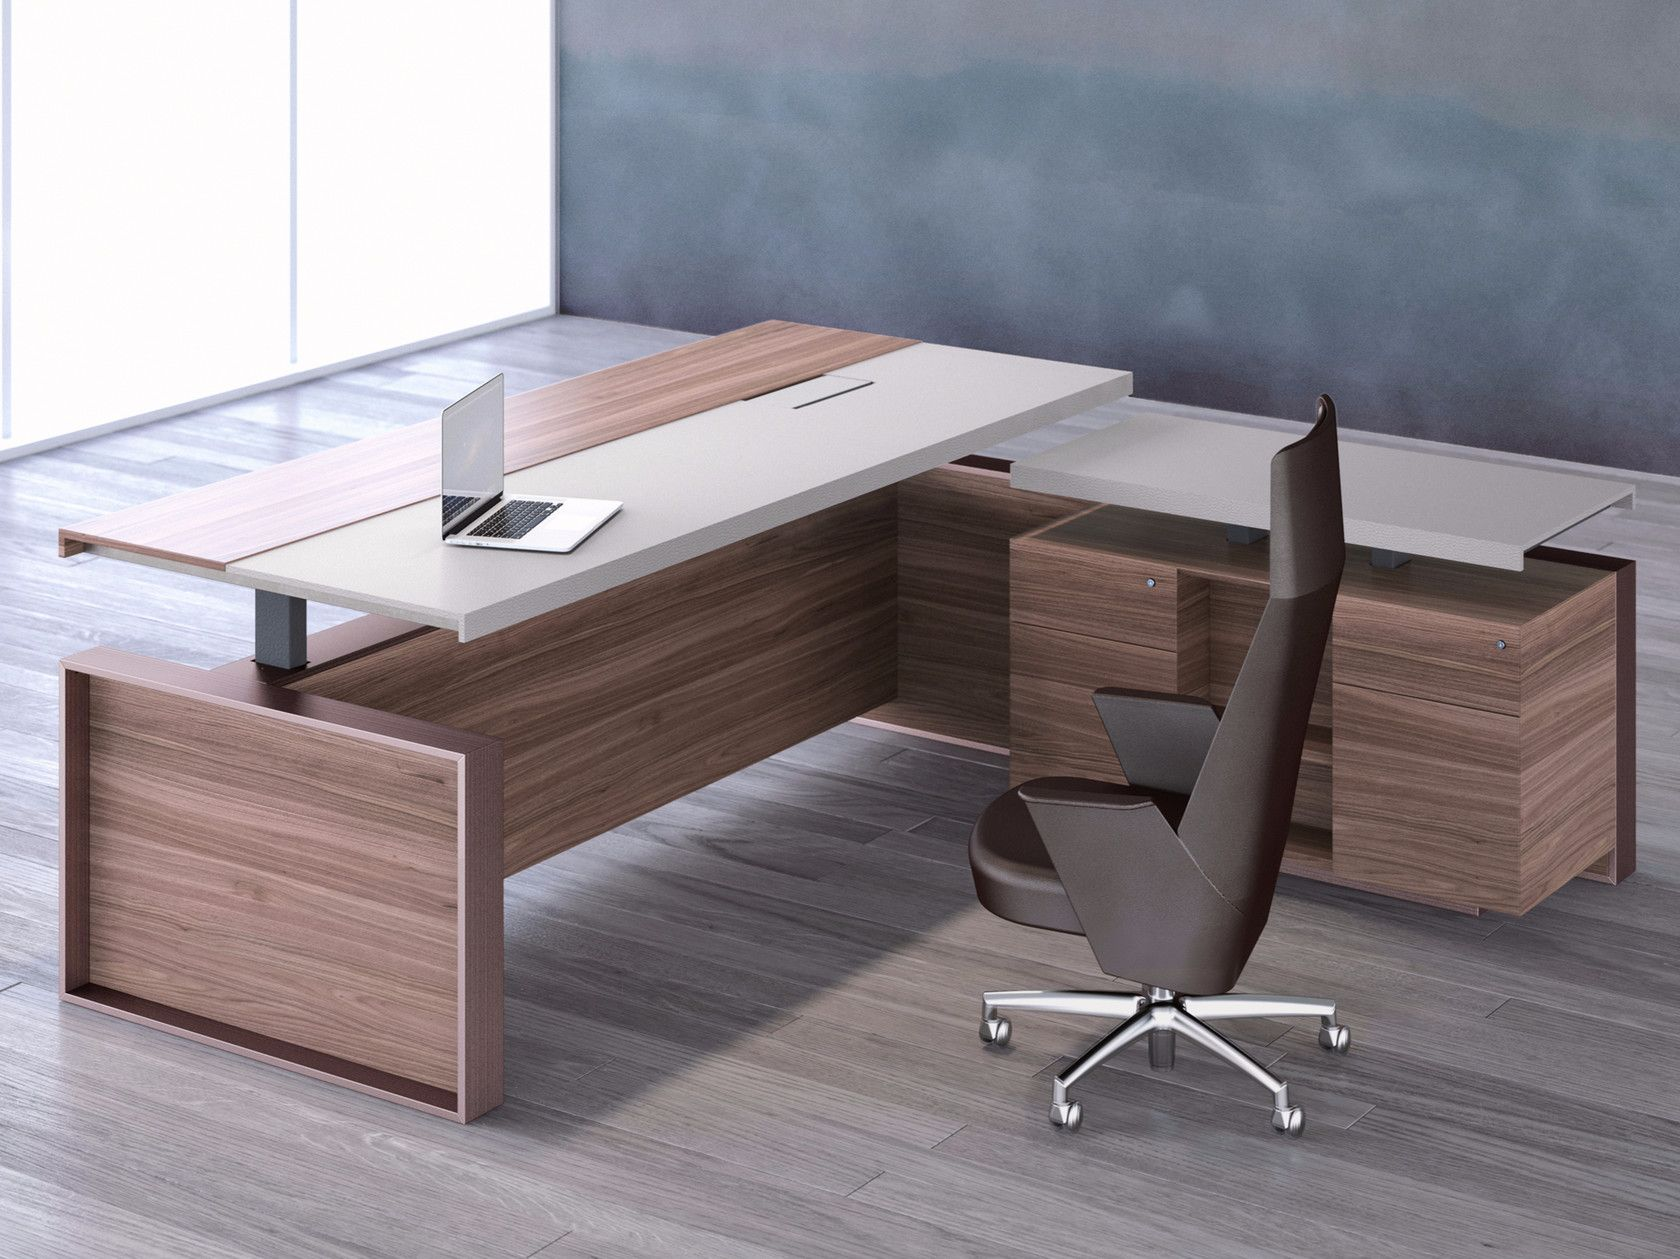 Leather And Veneer Executive Desk Altagamma L Shaped Office Desk By Estel Group Home Office Furniture Design Office Furniture Design Office Table Design